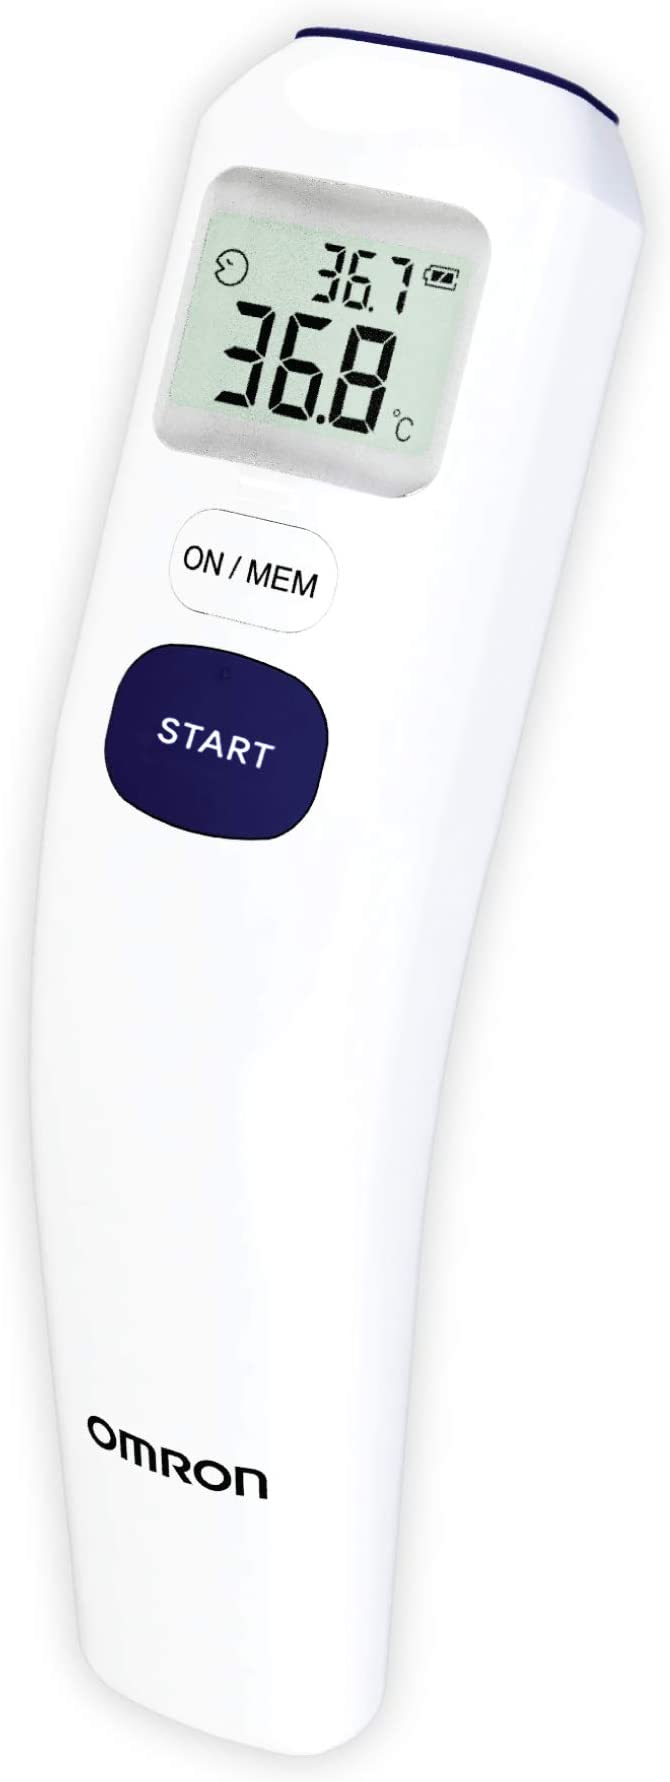 Omron Mc-720 Non-Contact Forehead Thermometer elderly gadget